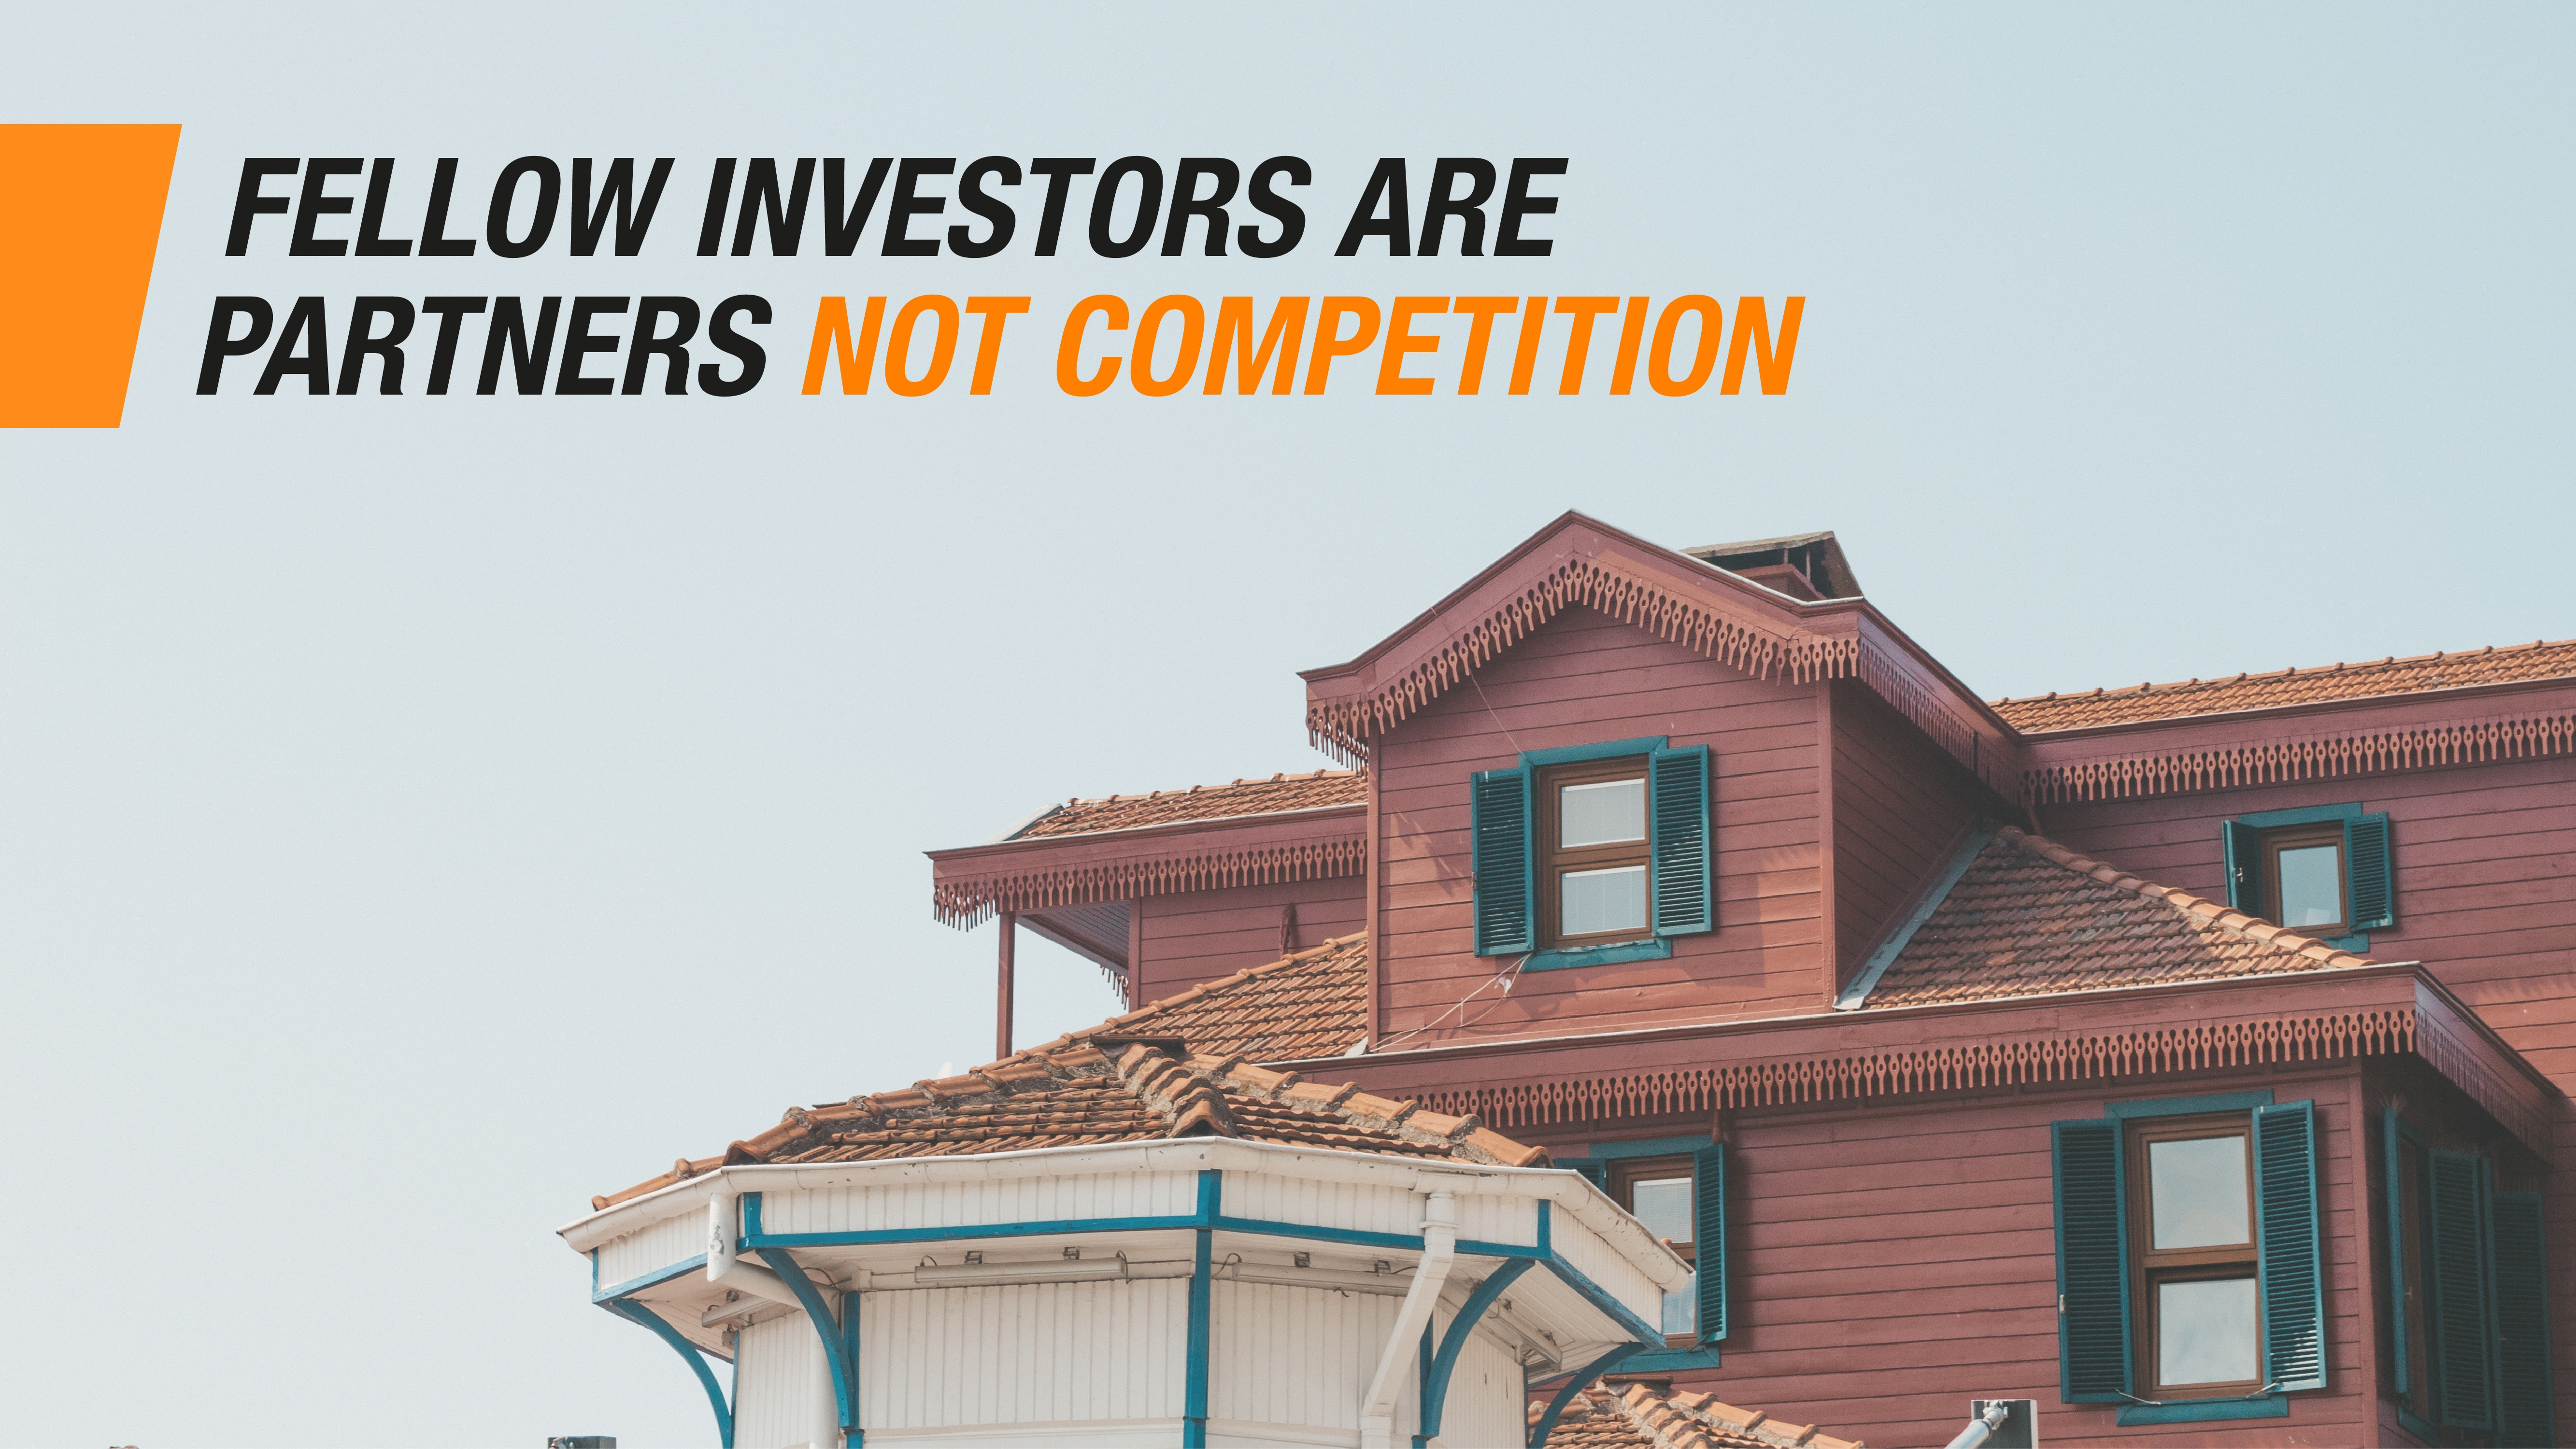 Fellow investors are PARTNERS not competition